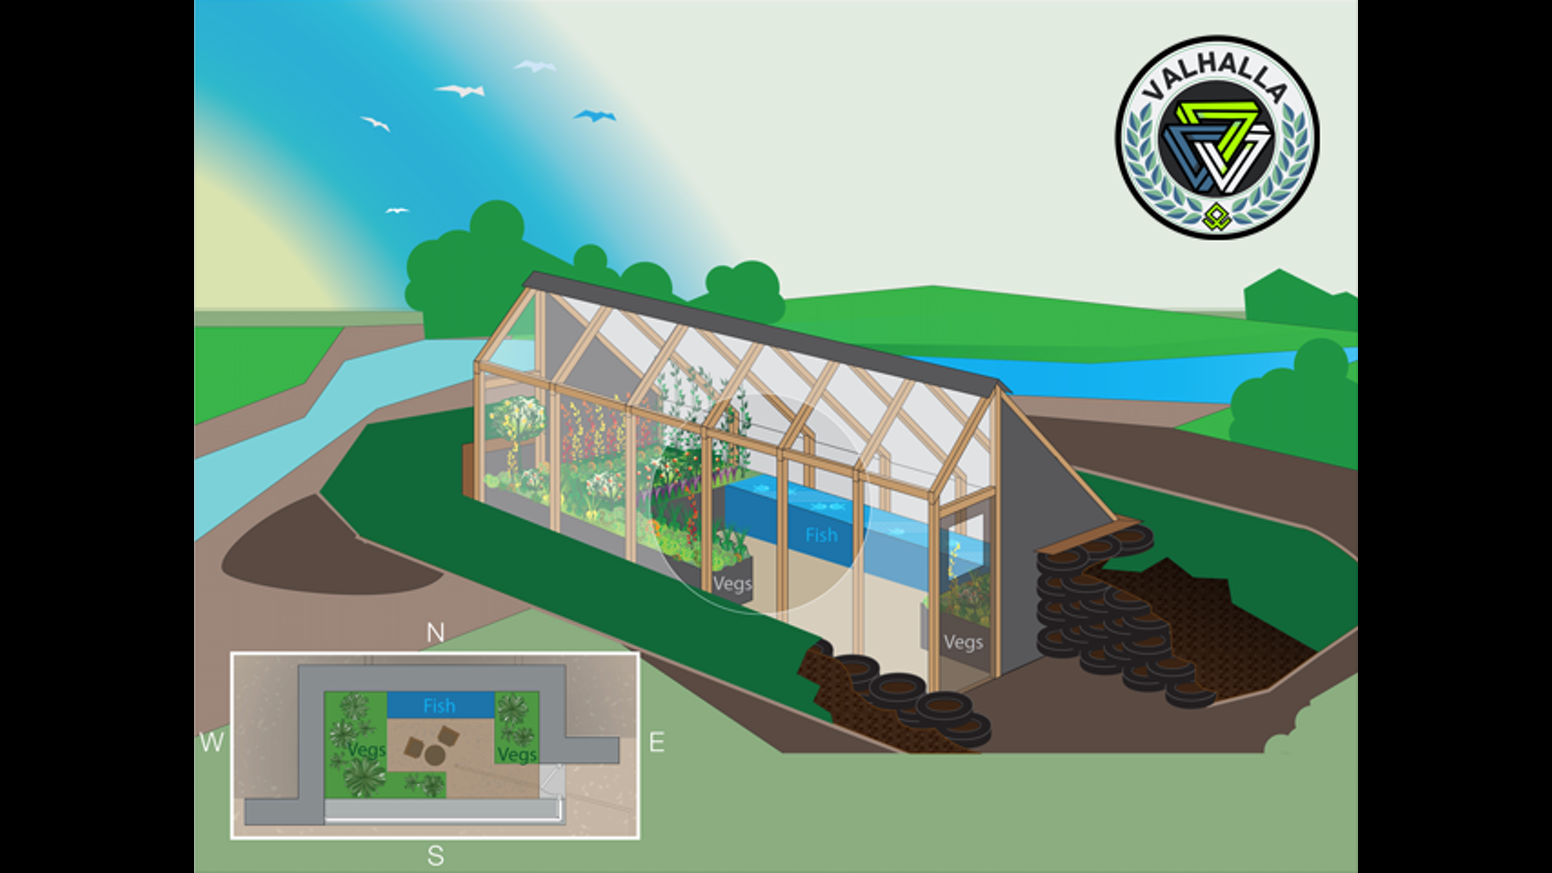 Pleasant The Farm Of The Future Earthshipinspired Greenhouse By Jordan  With Exquisite The Farm Of The Future Earthshipinspired Greenhouse With Captivating Garden Stuff For Sale Also Where Is Covent Garden London In Addition Garden Spade Uses And Garden City Fishing As Well As Climbing Frames For Small Gardens Additionally Vanstone Park Garden Centre From Kickstartercom With   Exquisite The Farm Of The Future Earthshipinspired Greenhouse By Jordan  With Captivating The Farm Of The Future Earthshipinspired Greenhouse And Pleasant Garden Stuff For Sale Also Where Is Covent Garden London In Addition Garden Spade Uses From Kickstartercom